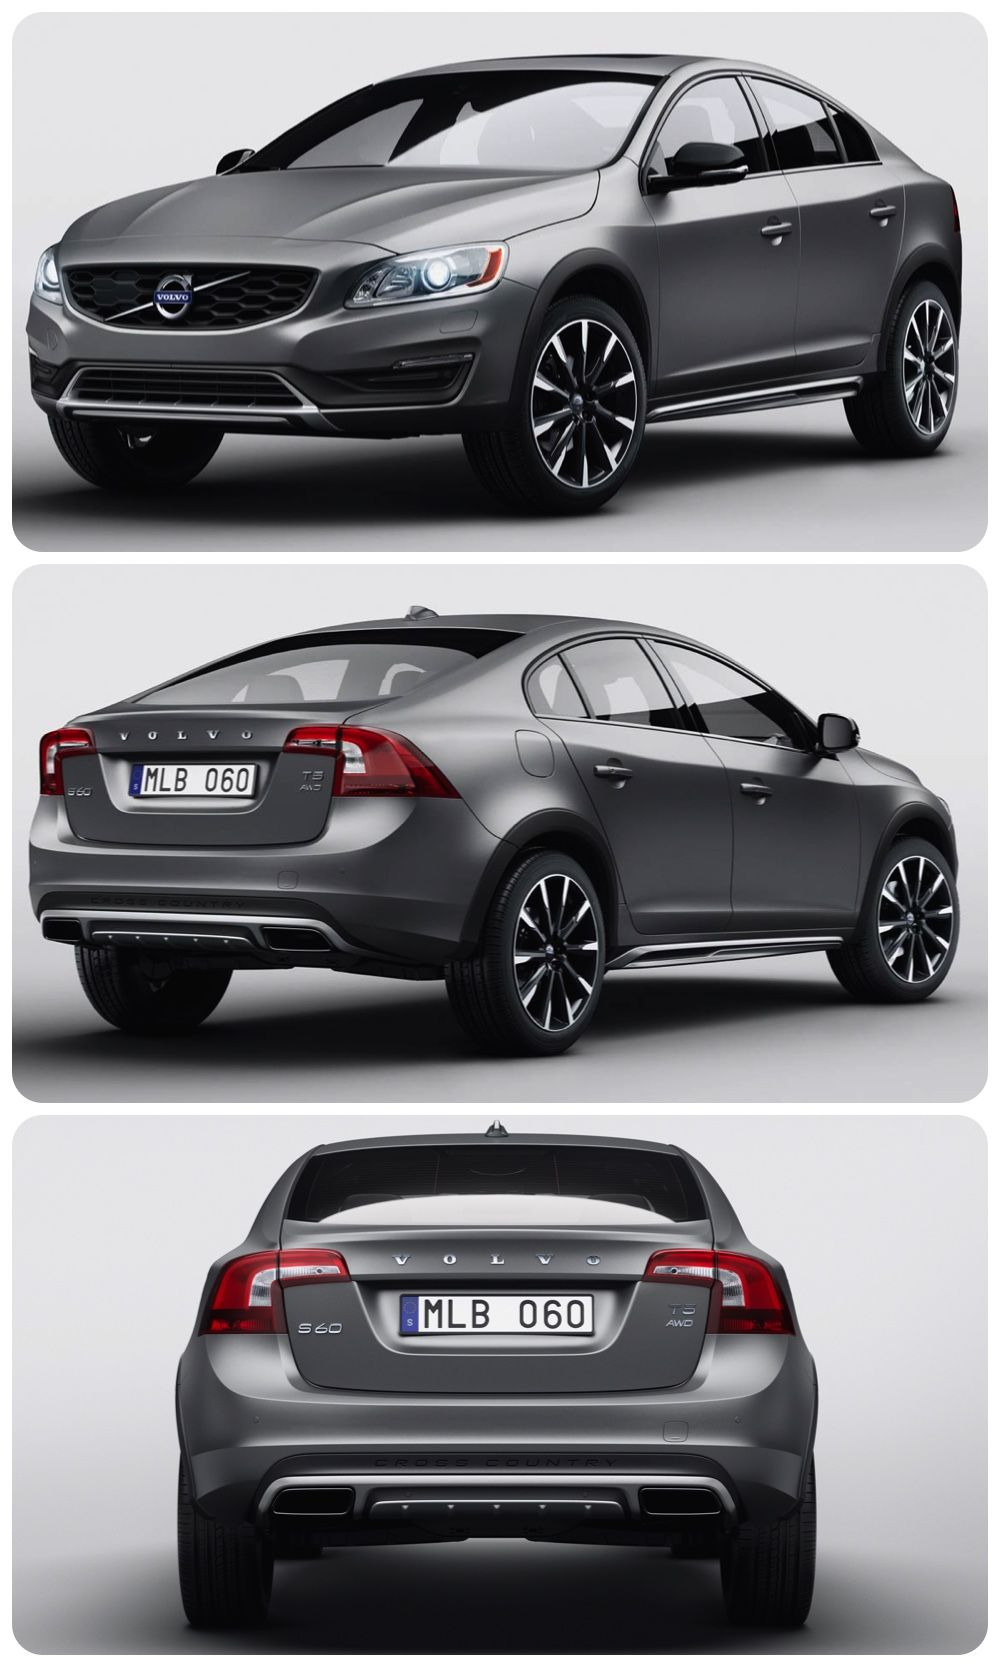 It Stacks Up Volvo S60 Cross Country New Lifestyle Oriented Volvo S60 Cross Country Another Glimpse Of The Future For Volvo Cars The Co Volvo Ford Otomobil